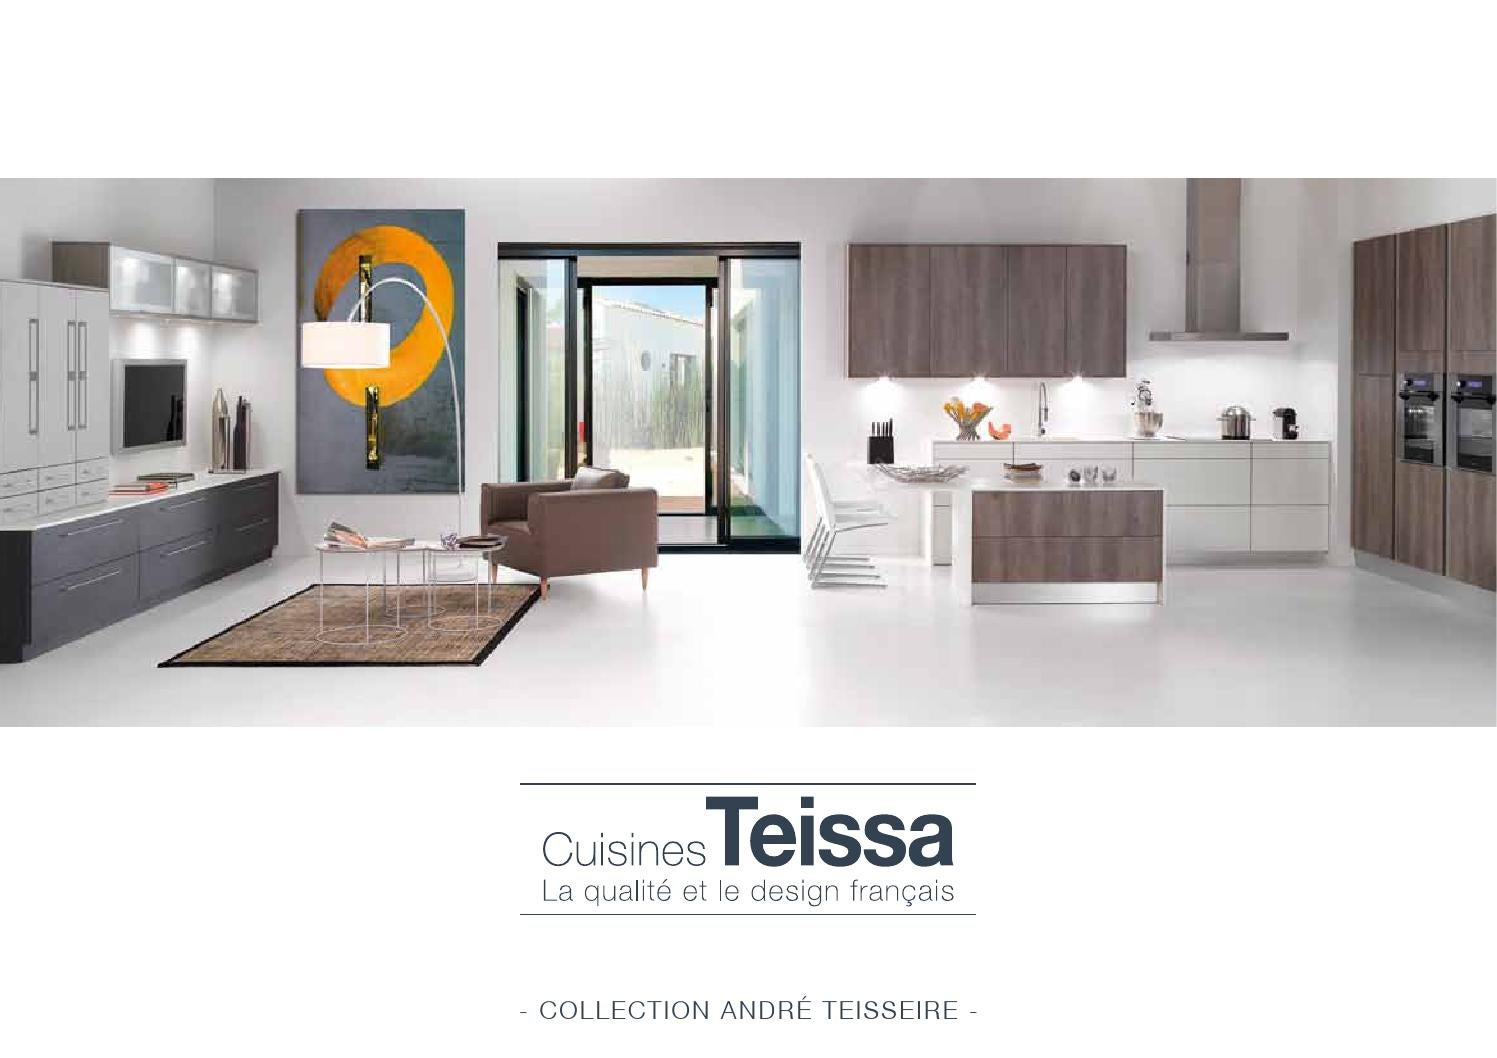 catalogue teissa 2013 297x210 by teissa issuu. Black Bedroom Furniture Sets. Home Design Ideas